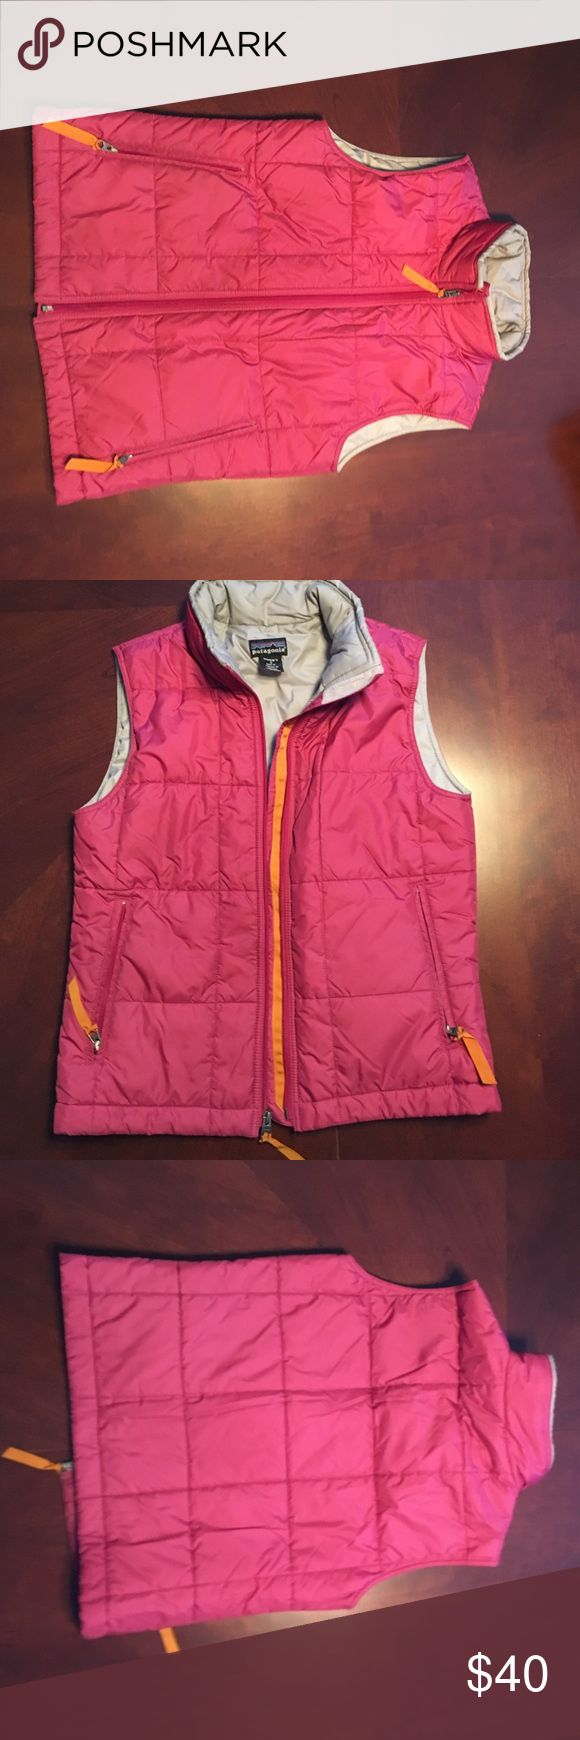 Patagonia vest Pink vest with orange accents. Size small in excellent condition . Patagonia Jackets & Coats Vests